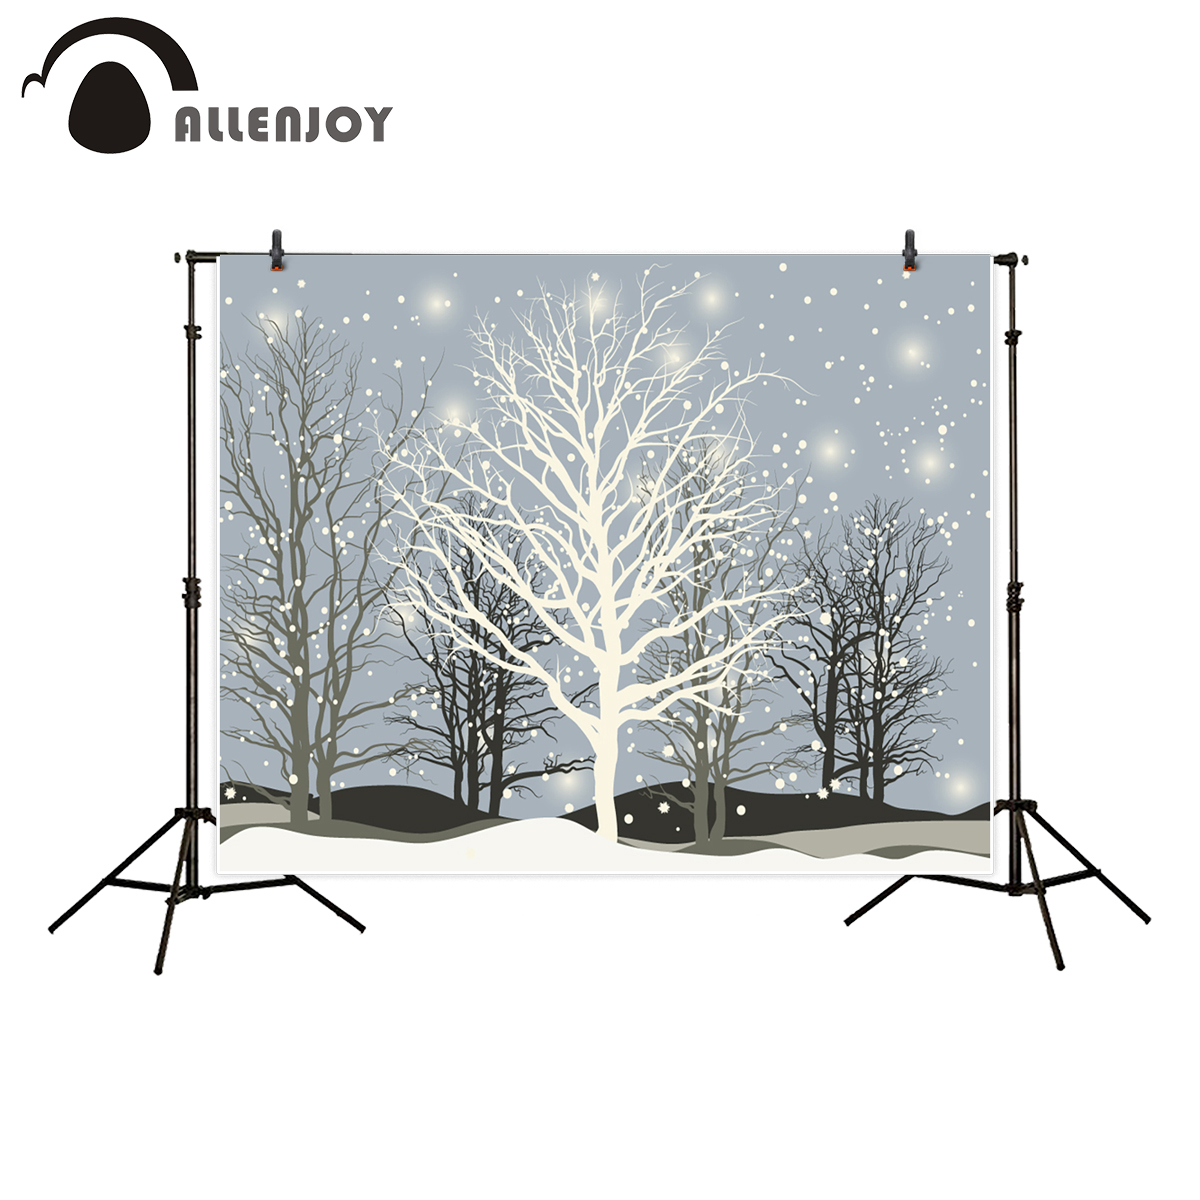 Allenjoy backdrop for photo winter tree snow Silhouette christmas background photo prop photocall photo studio for kids allenjoy christmas backdrop tree gift chandelier fireplace cute professional background backdrop for photo studio